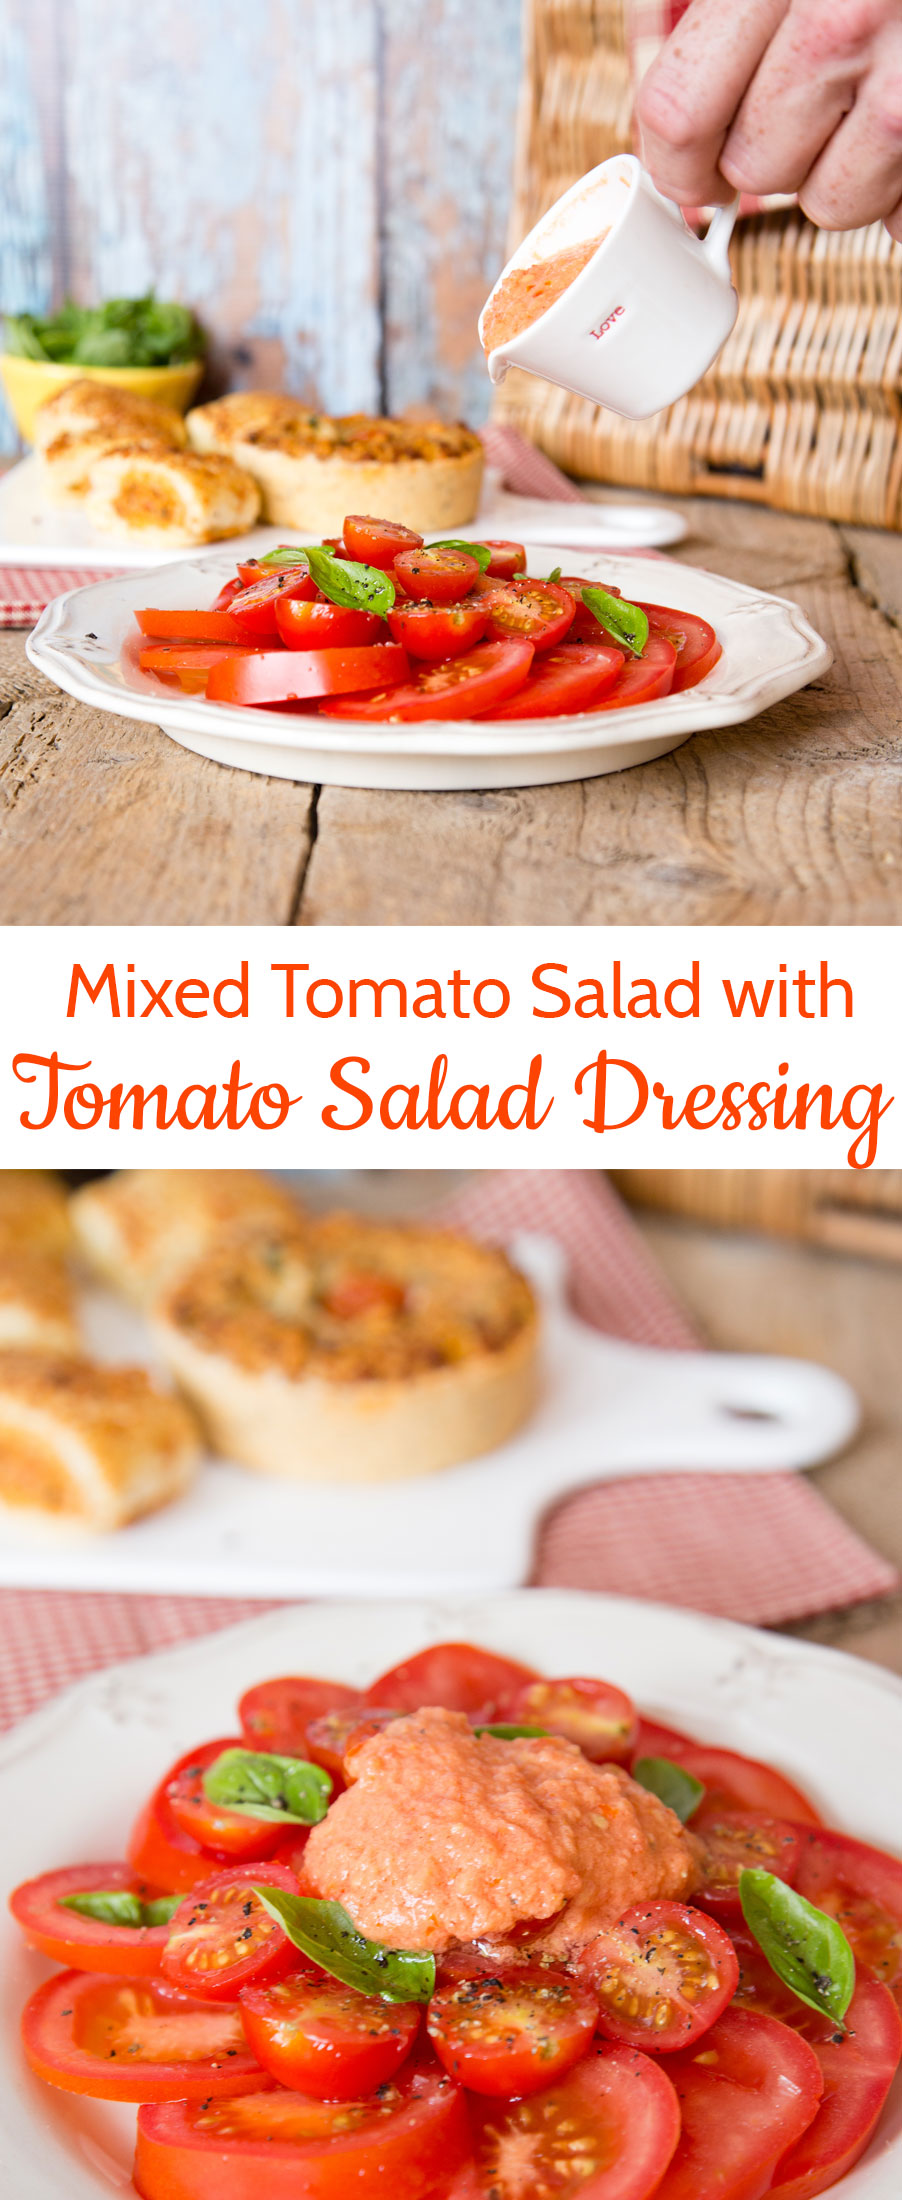 This simple salad celebrates different varieties of tomato, has rich and tasty tomato salad dressing and is perfect for lunch on a hot summer day.